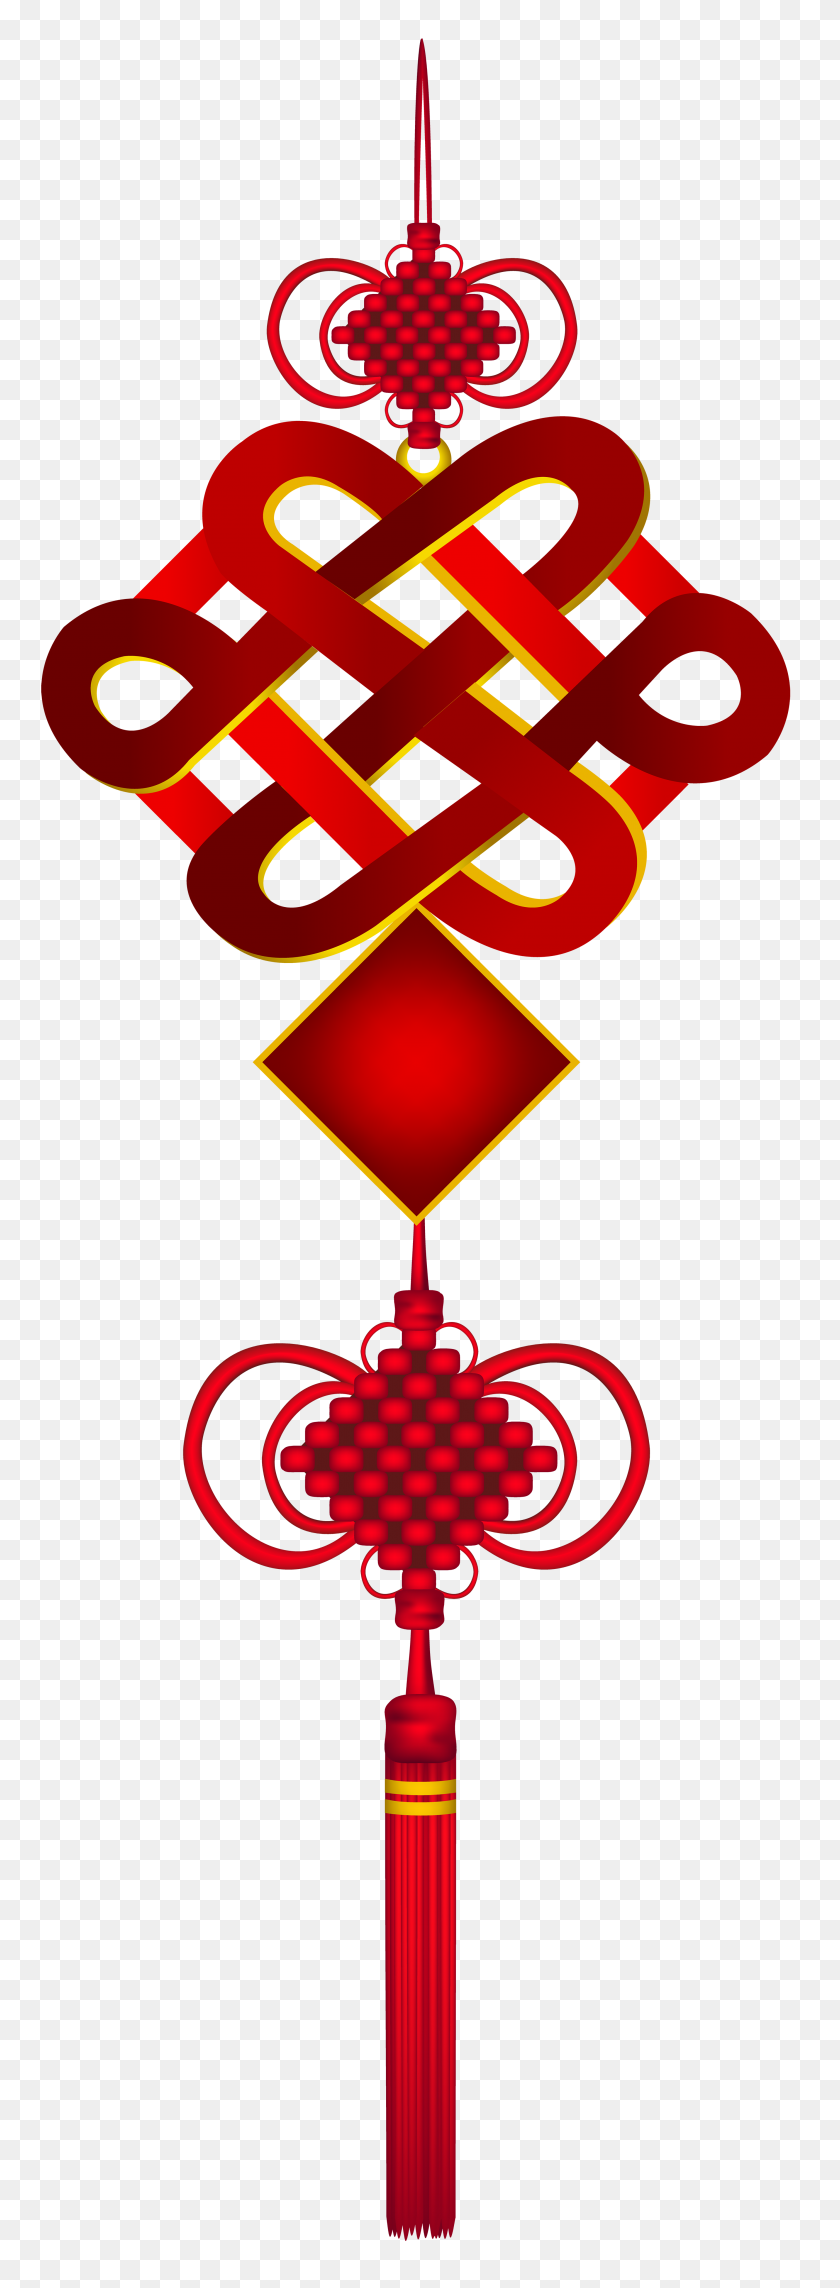 Chinese Hanging Ornament Png Clip Art - Ornament PNG